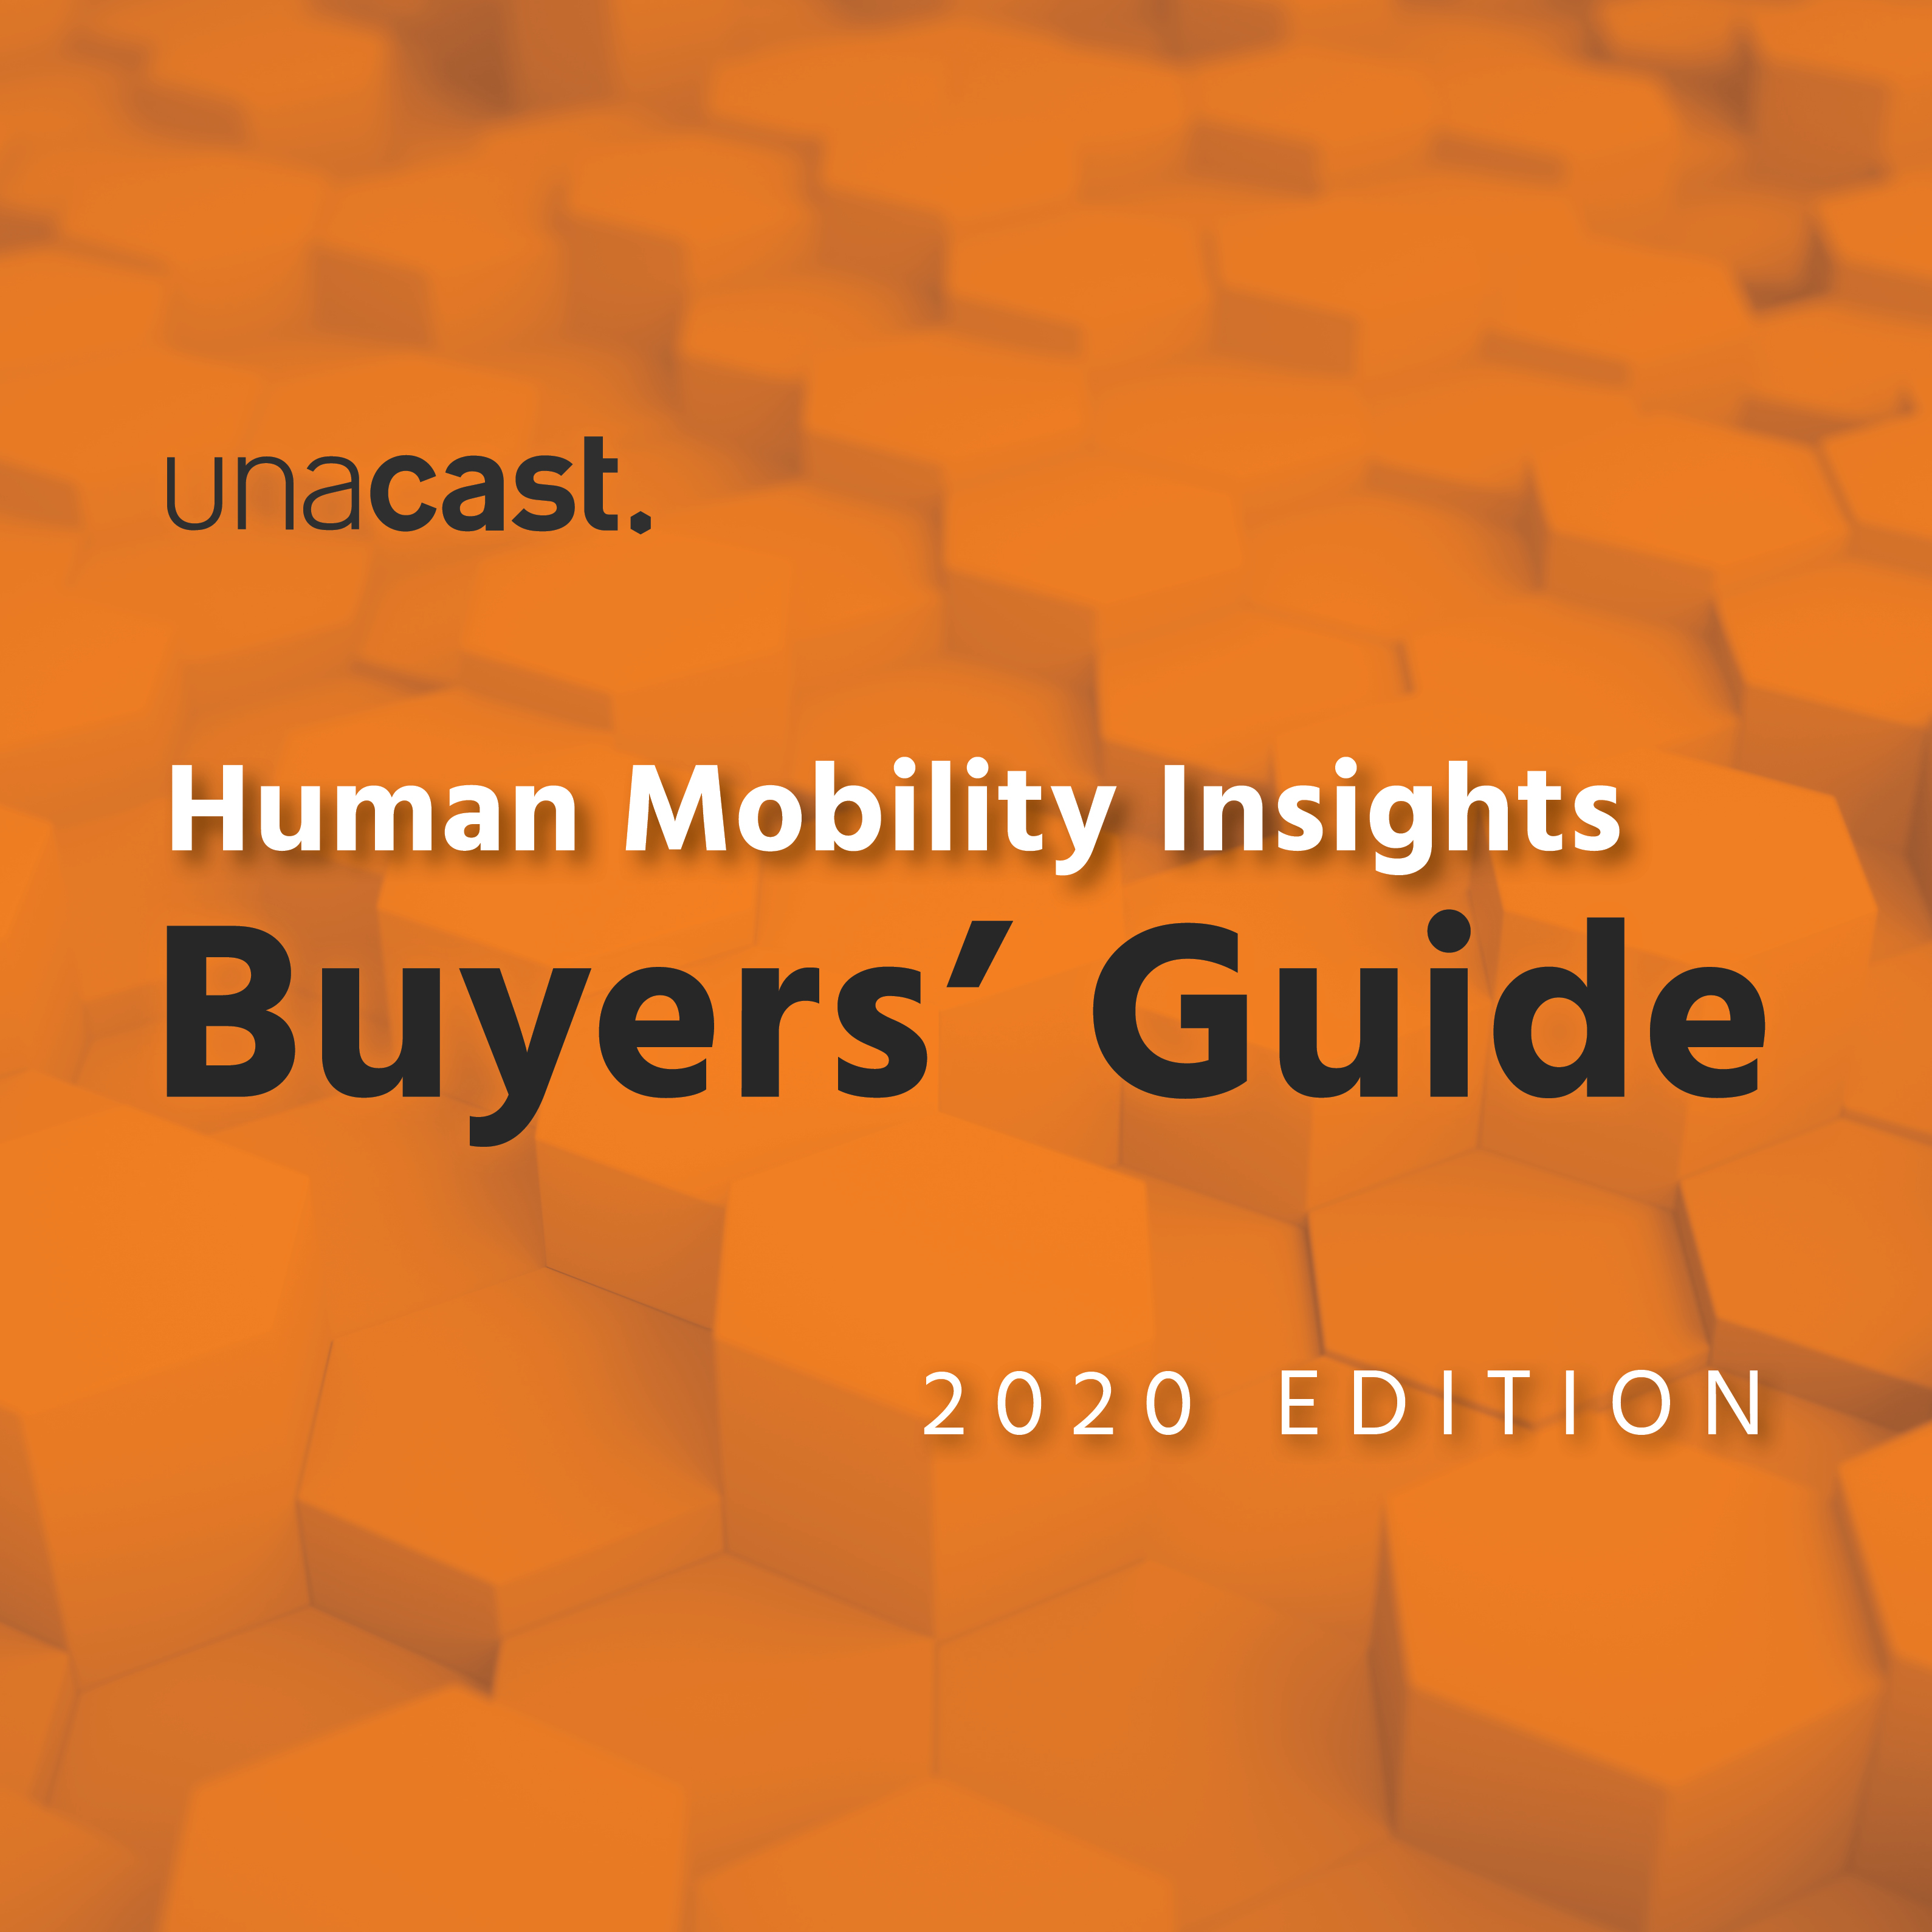 Human Mobility Insights Buyers' Guide